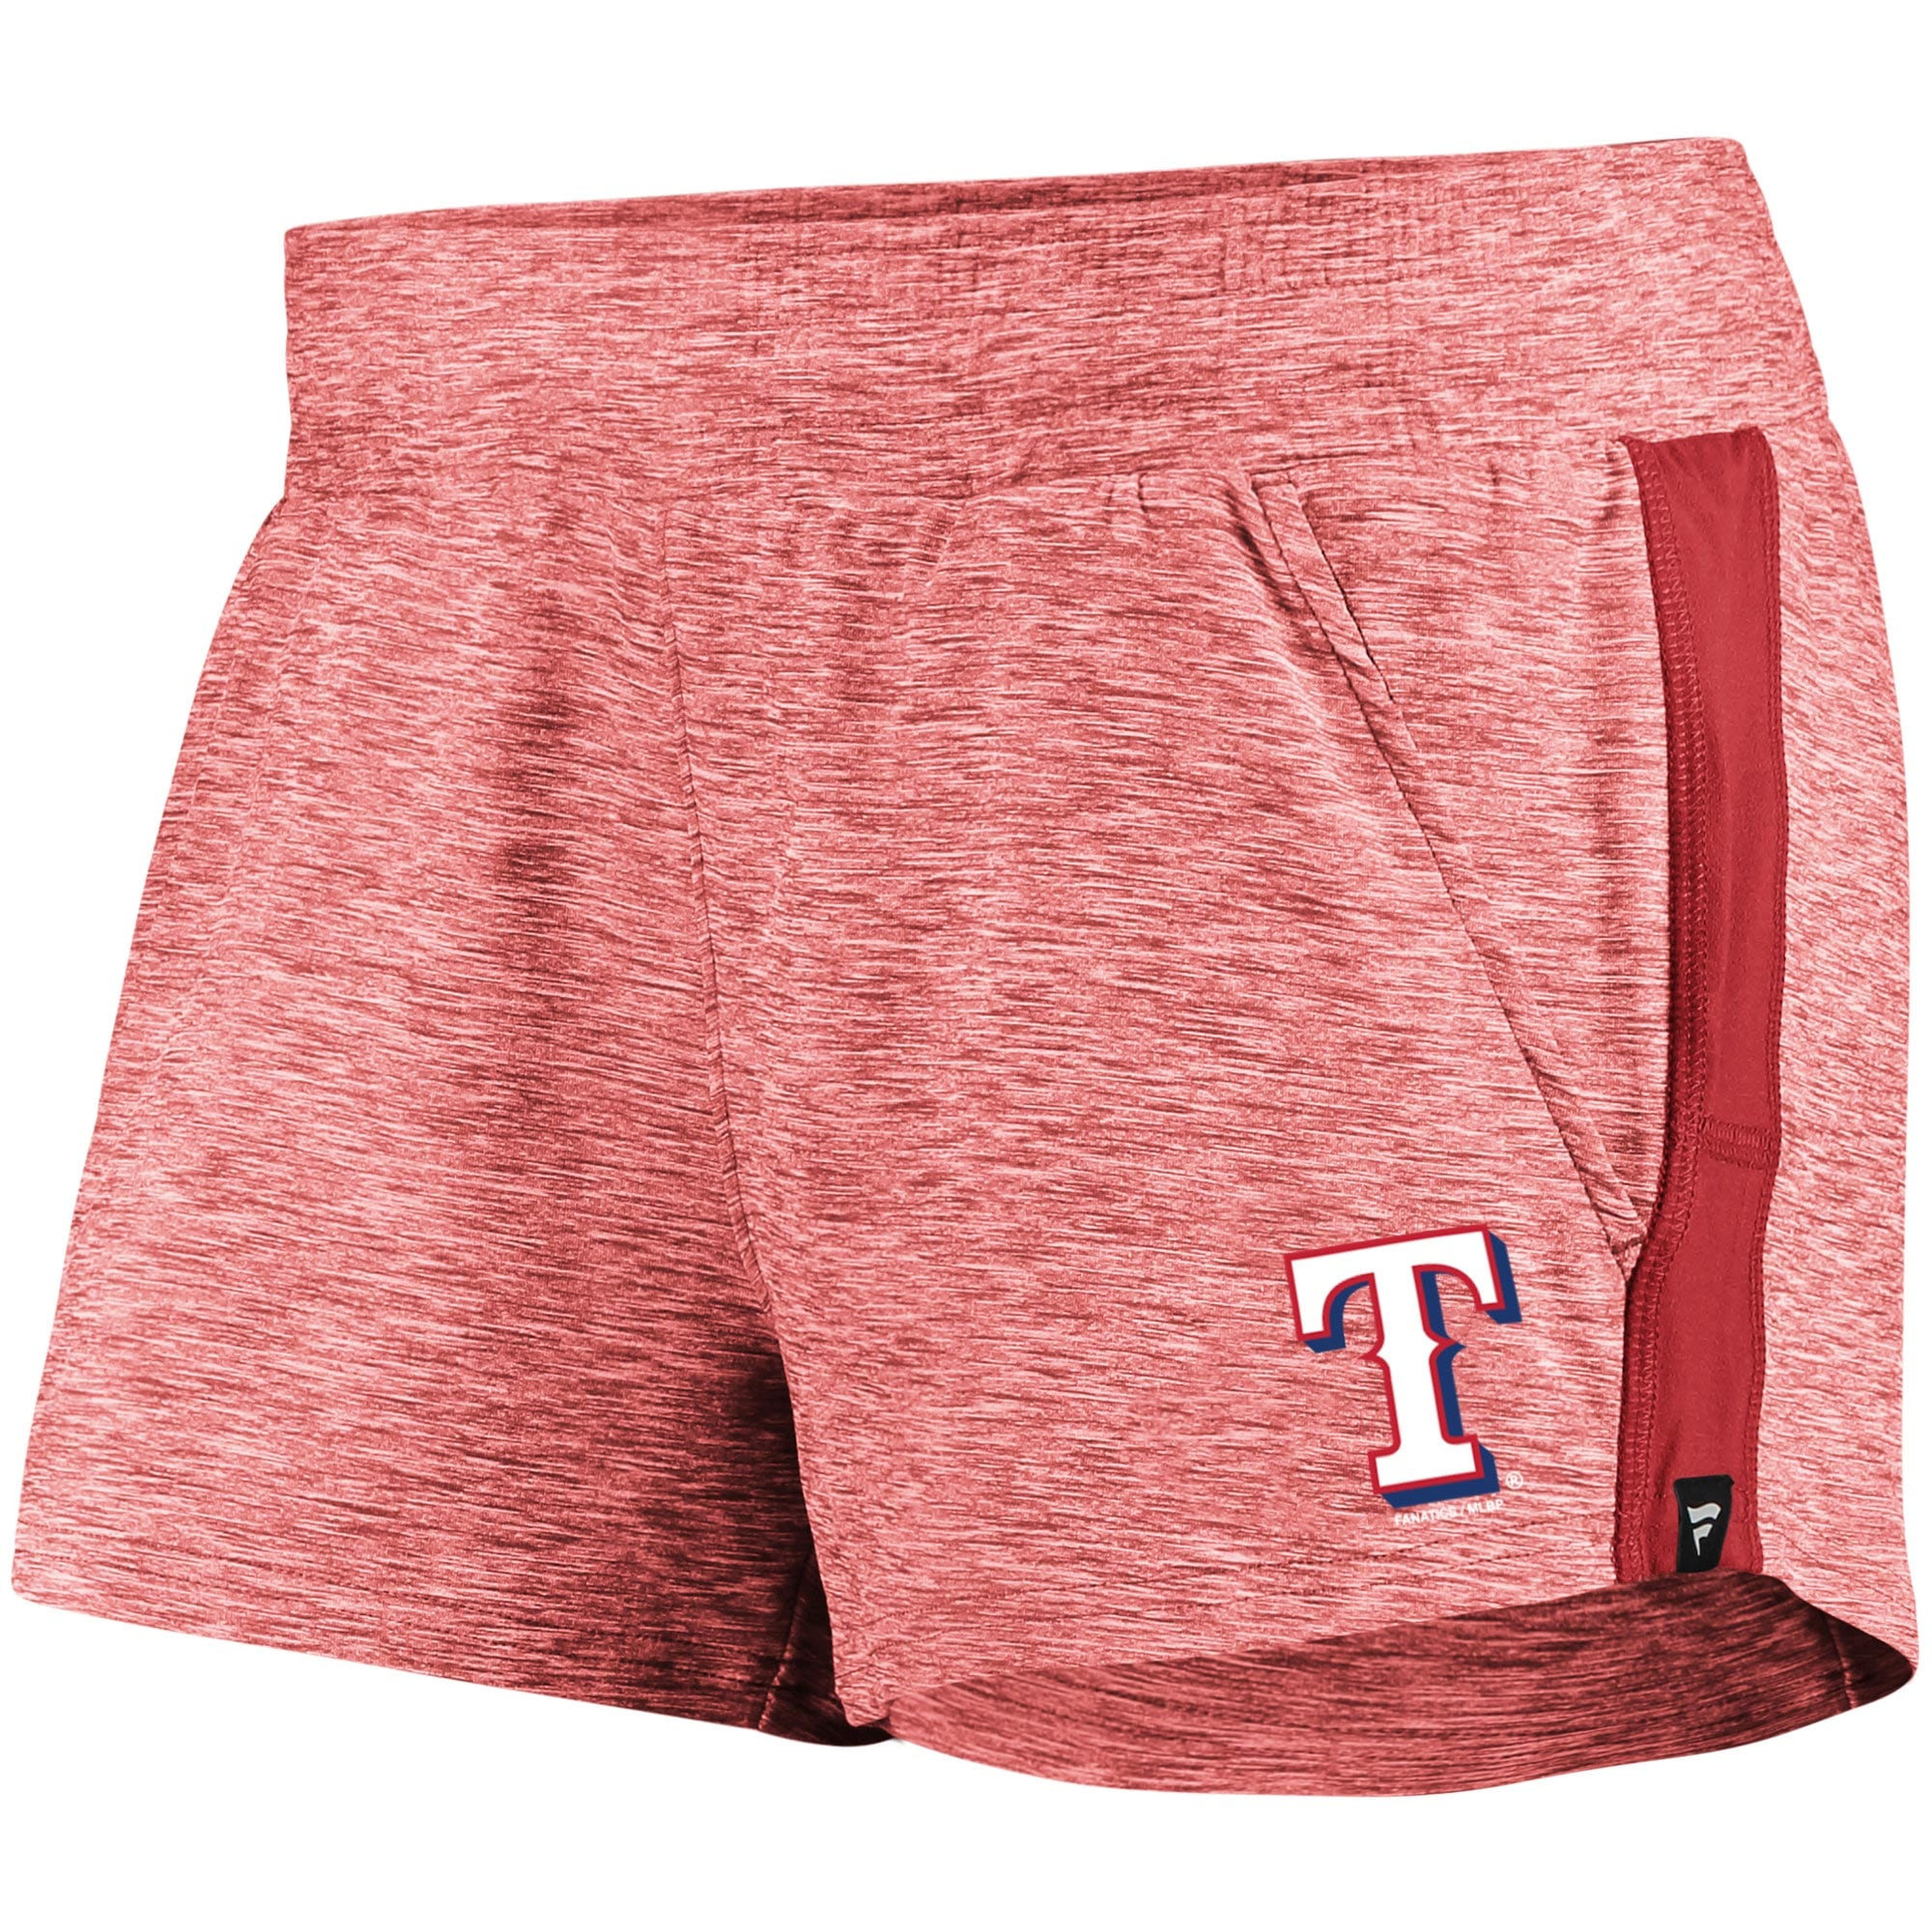 Texas Rangers Fanatics Branded Women's Made To Move Running Shorts - Heathered Red/Red